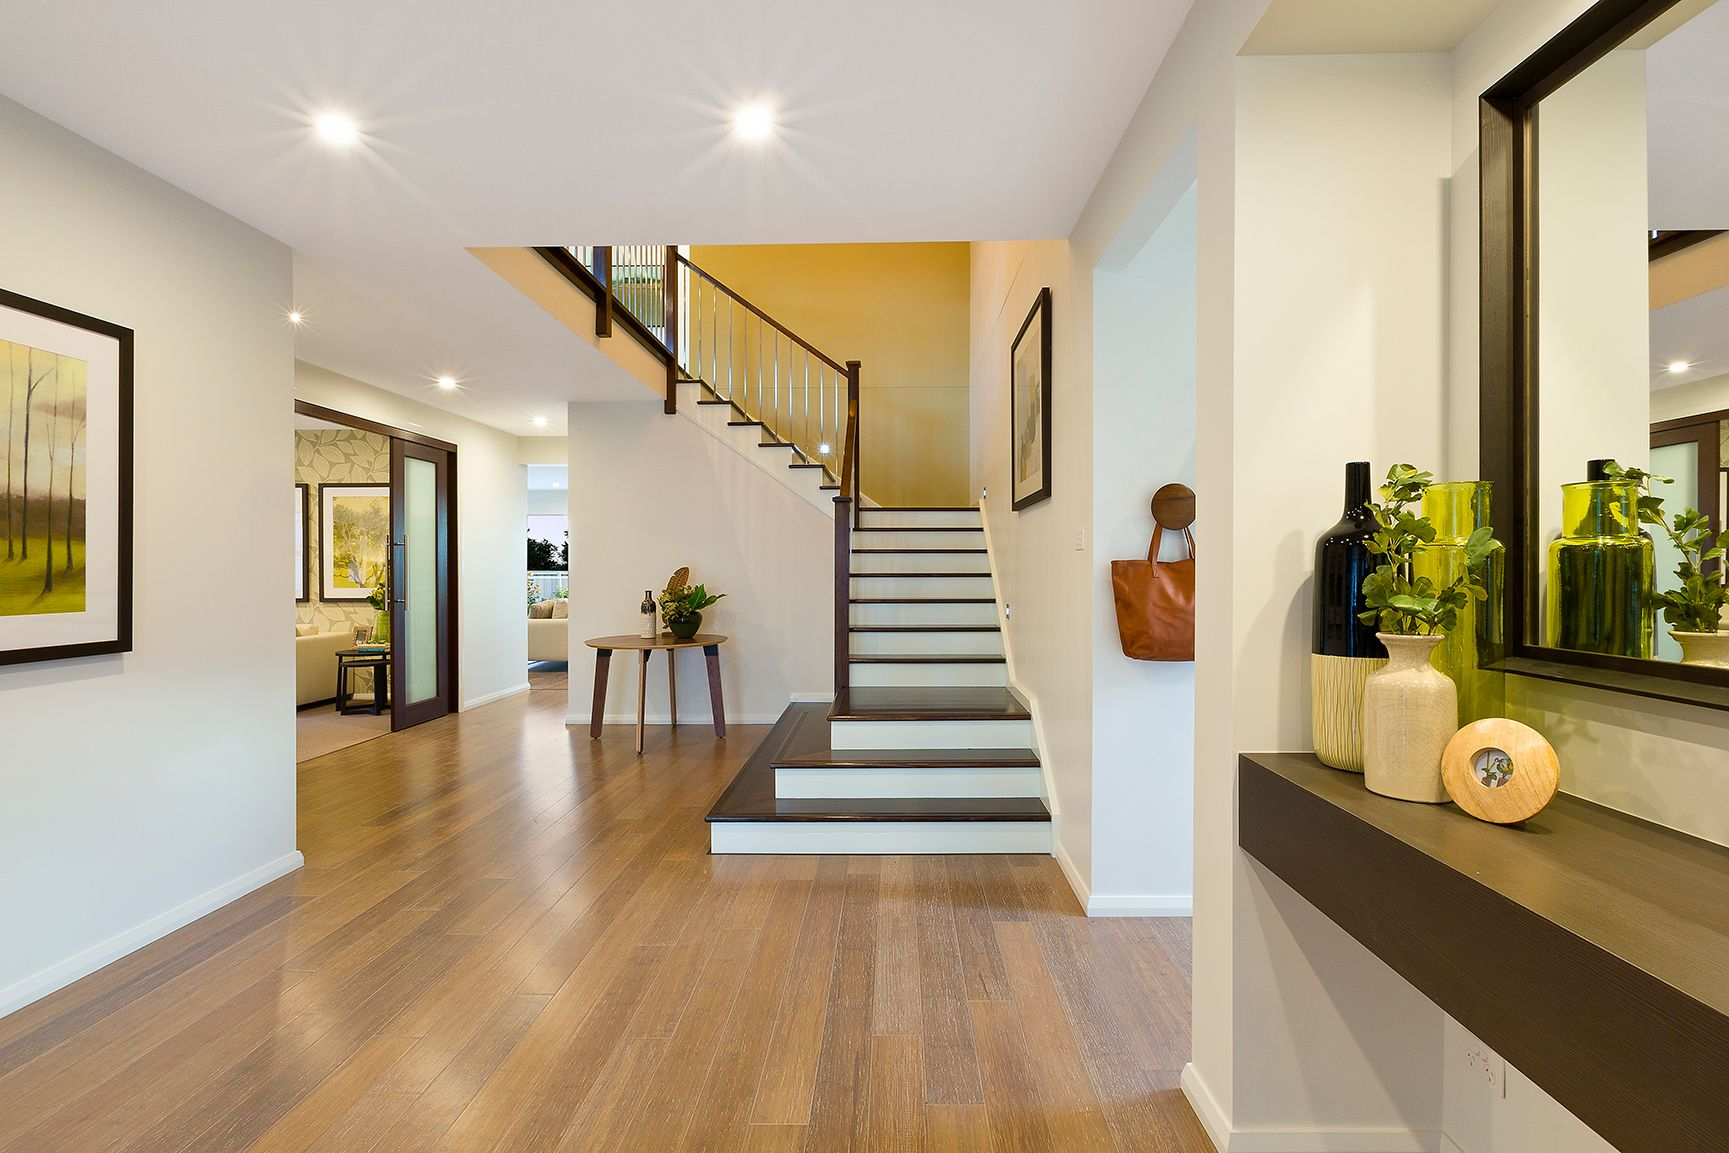 The WOW factor. A grand entry to welcome you home. #MojoHomes #HomeworldKellyville #staircase